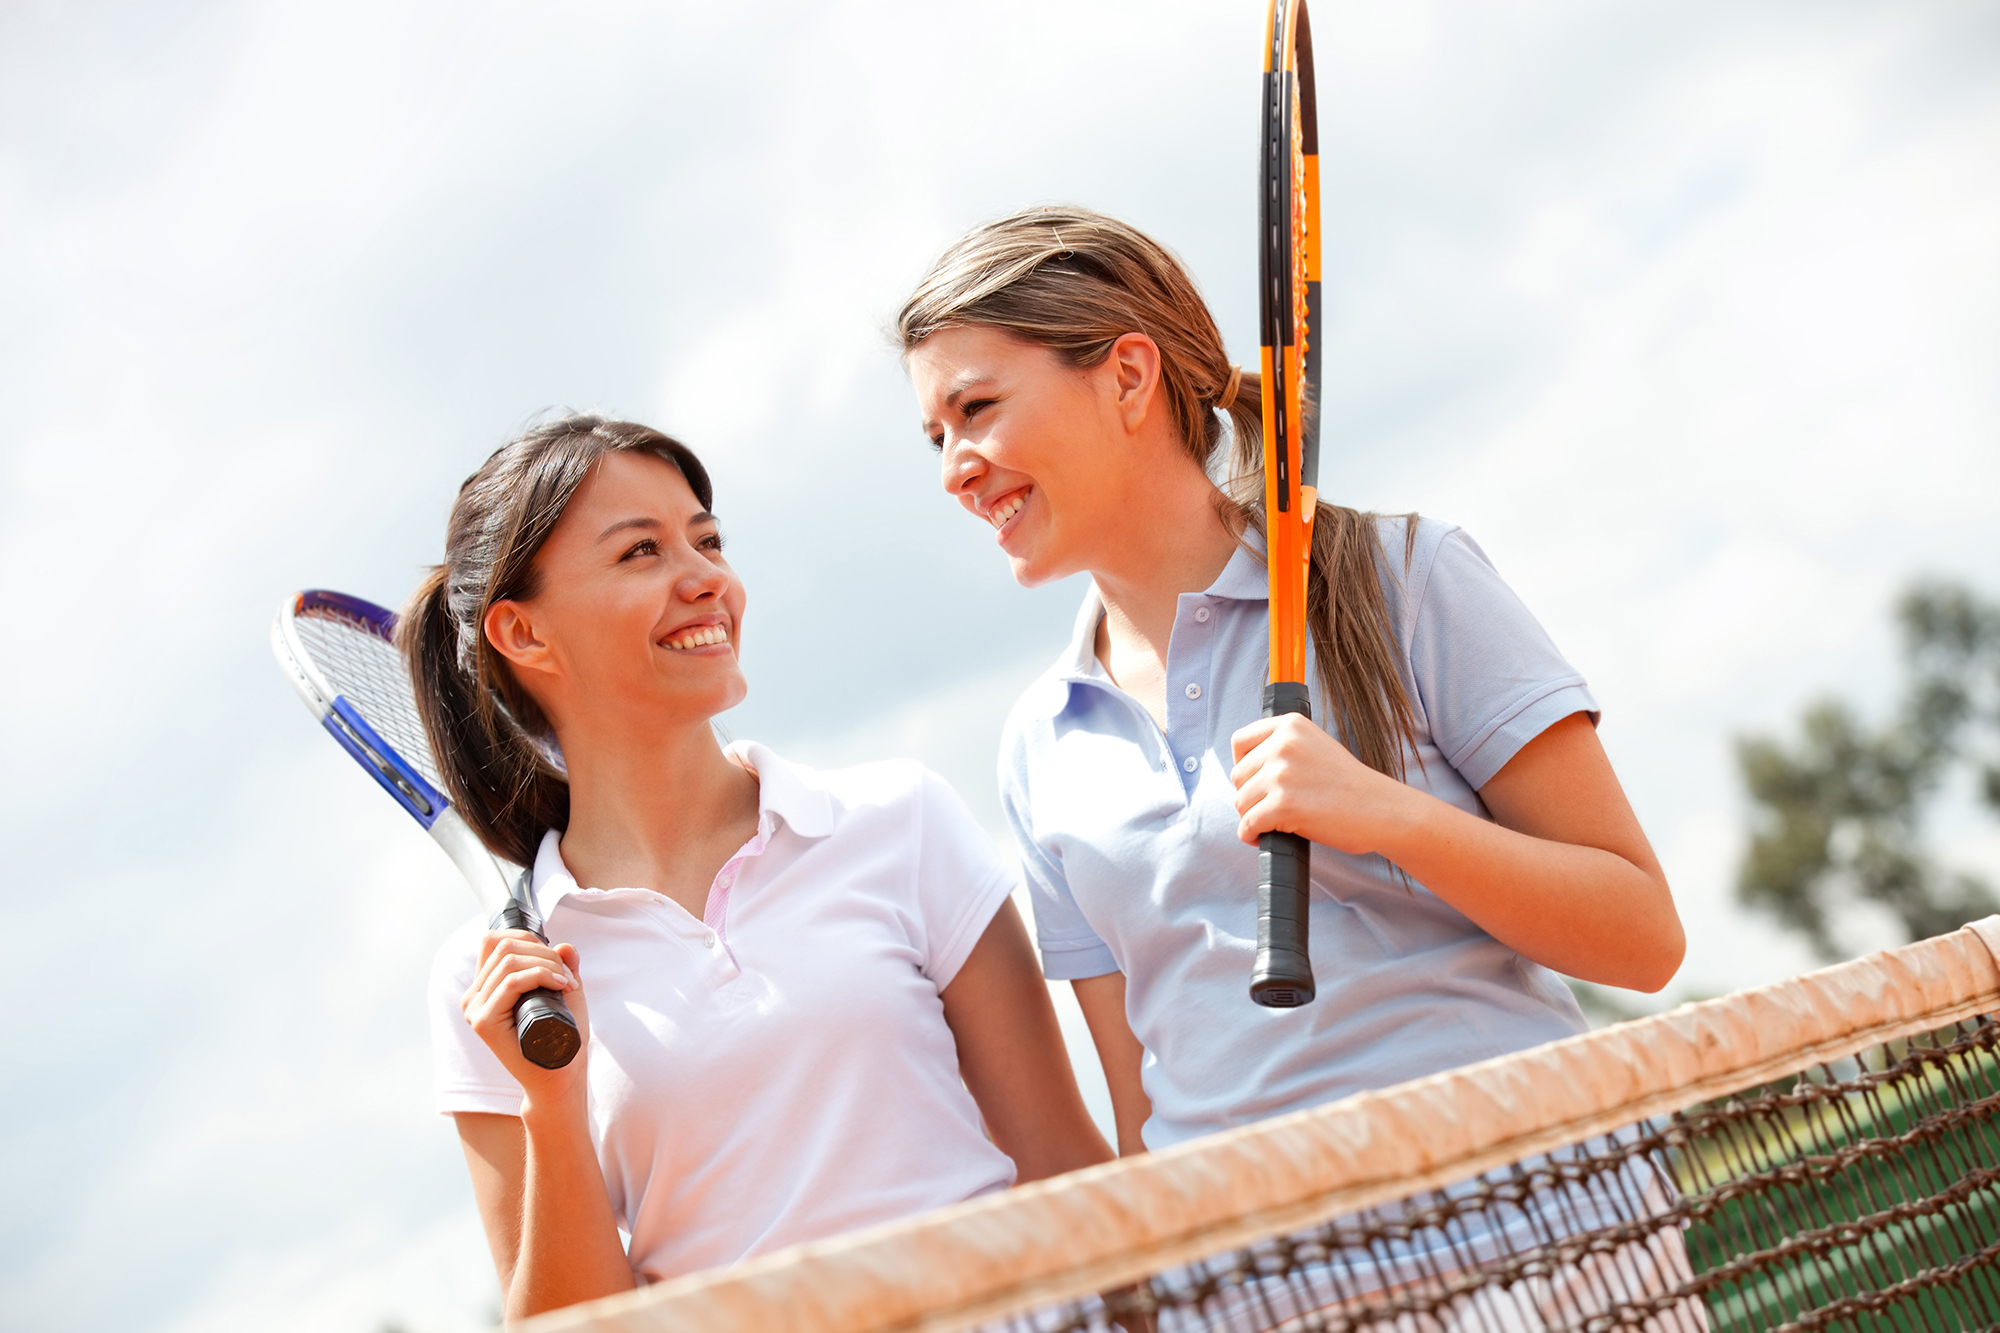 A wide range of tennis classes will be available